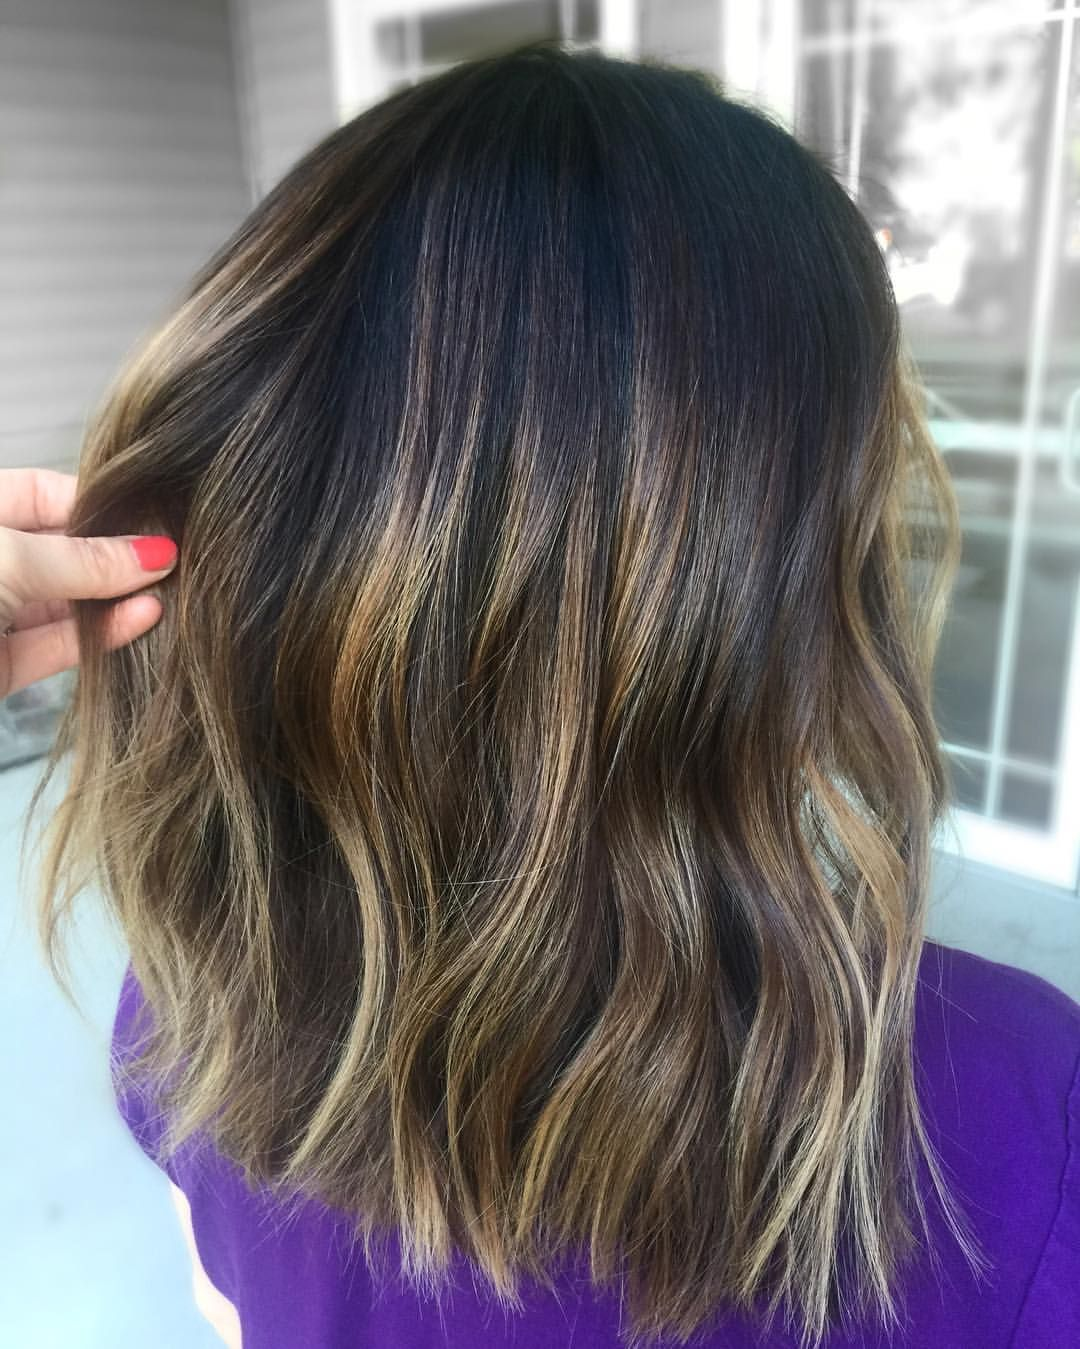 Instagram Photo By Jamie Sea Jun 16 2016 At 10 46am Utc Haare Balayage